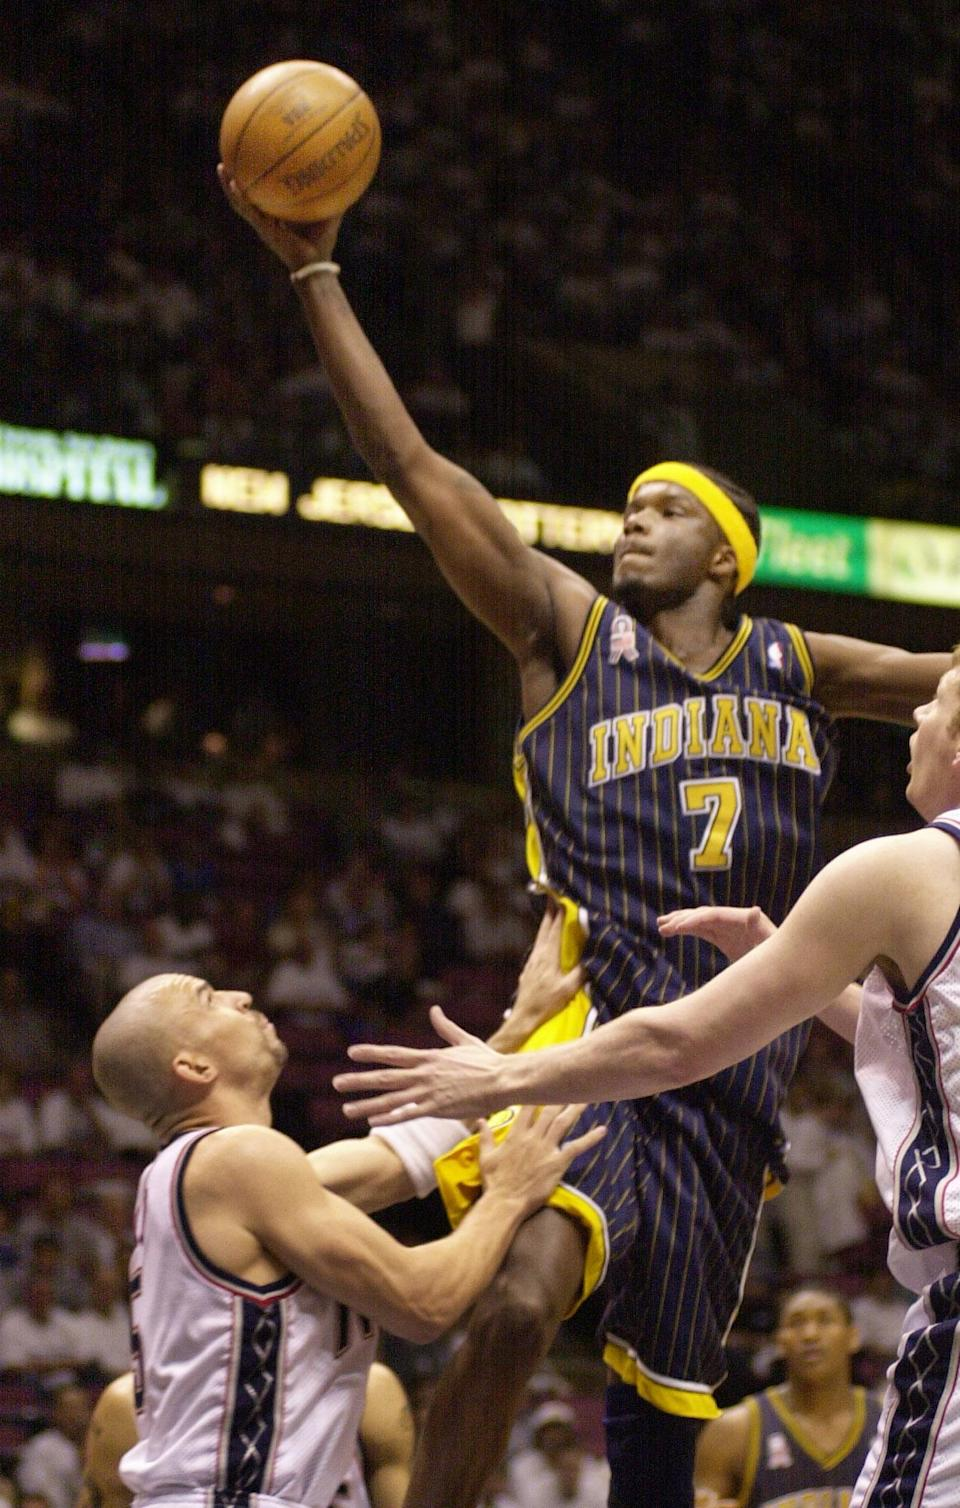 <p>Jermaine O'Neal skipped college and was selected by the Portland Trail Blazers with the 17th overall pick. Since O'Neal is from South Carolina, it would make sense that he might have attended South Carolina to play college hoops. </p>